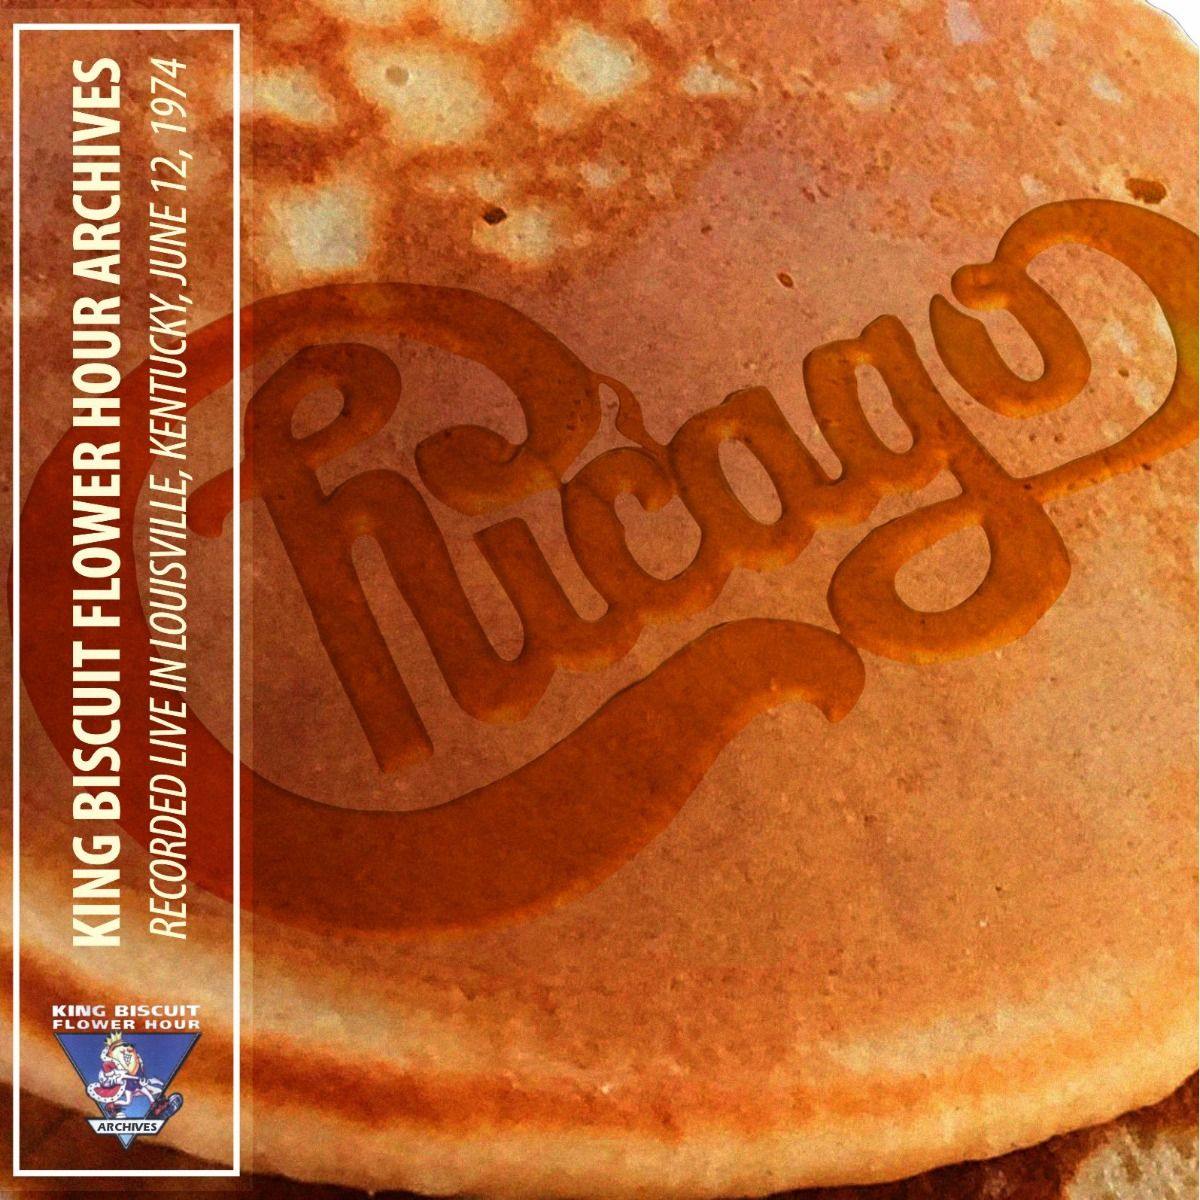 CHICAGO King Biscuit Flower Hour 1974